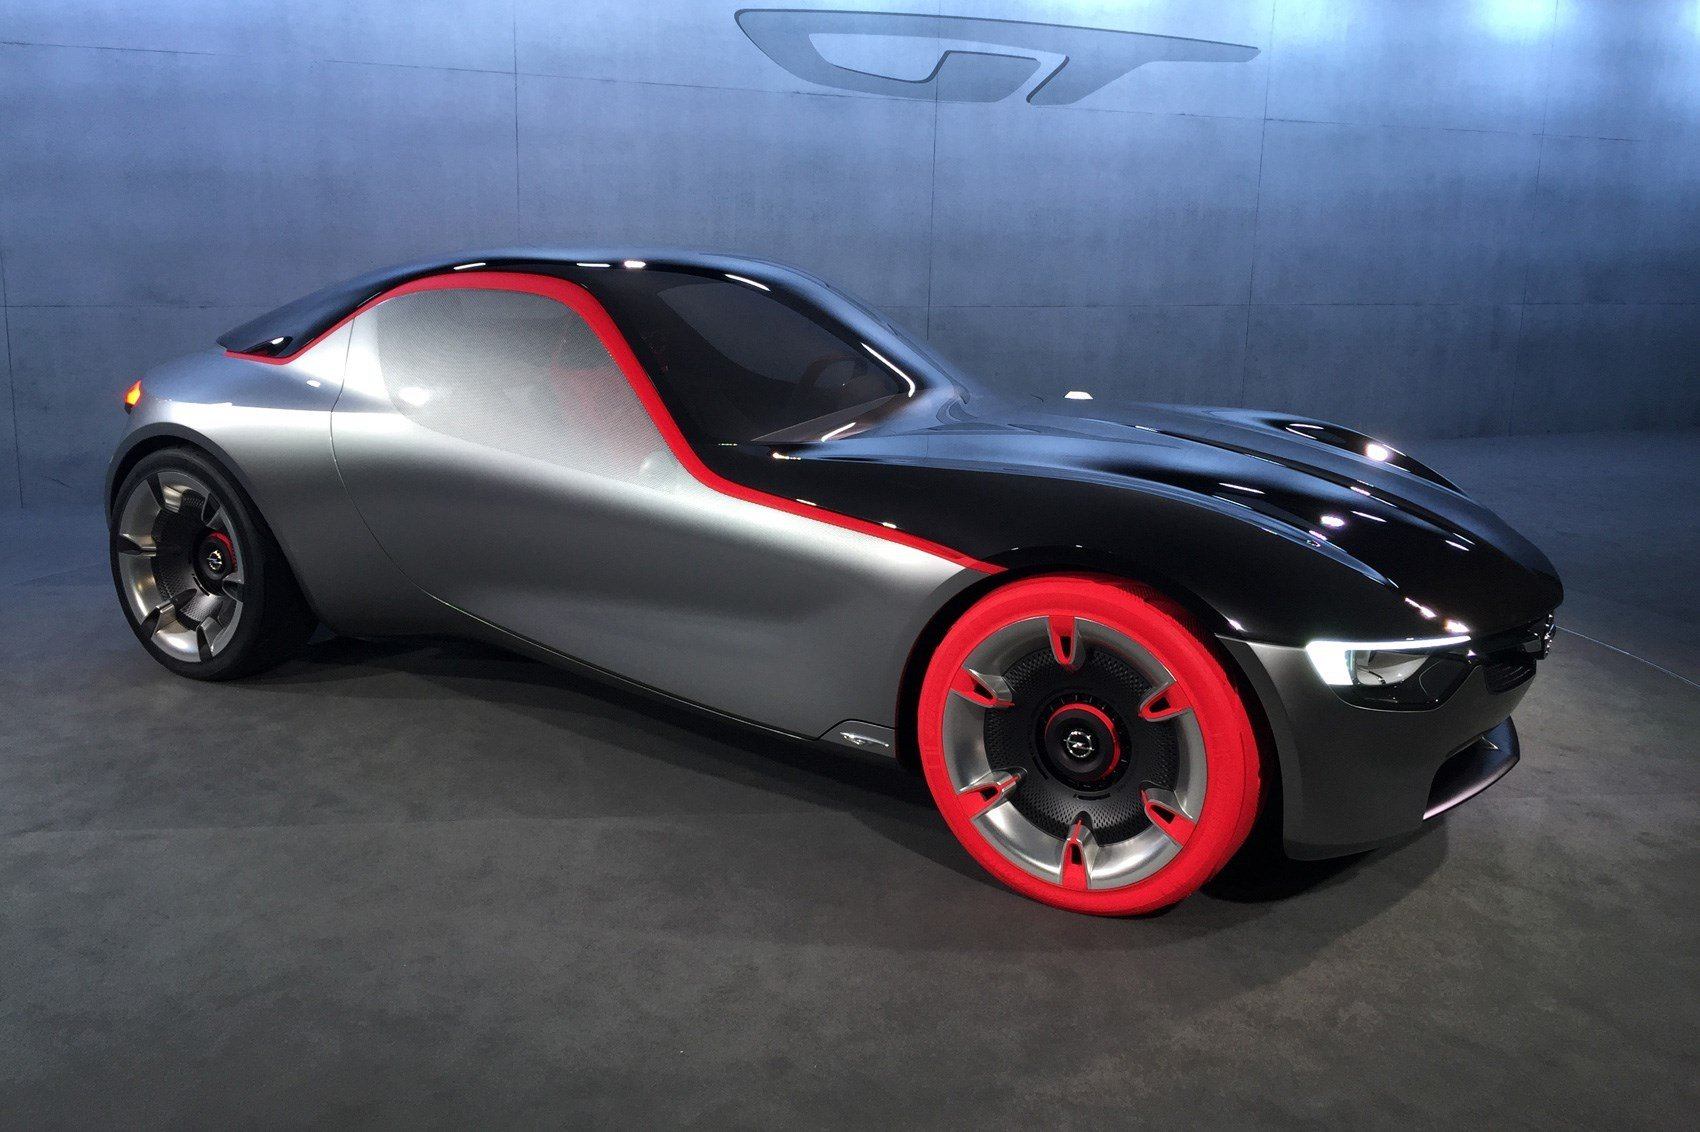 New Opel Gt Concept Revealed At Geneva 2016 Vauxhall's Sports On This Month